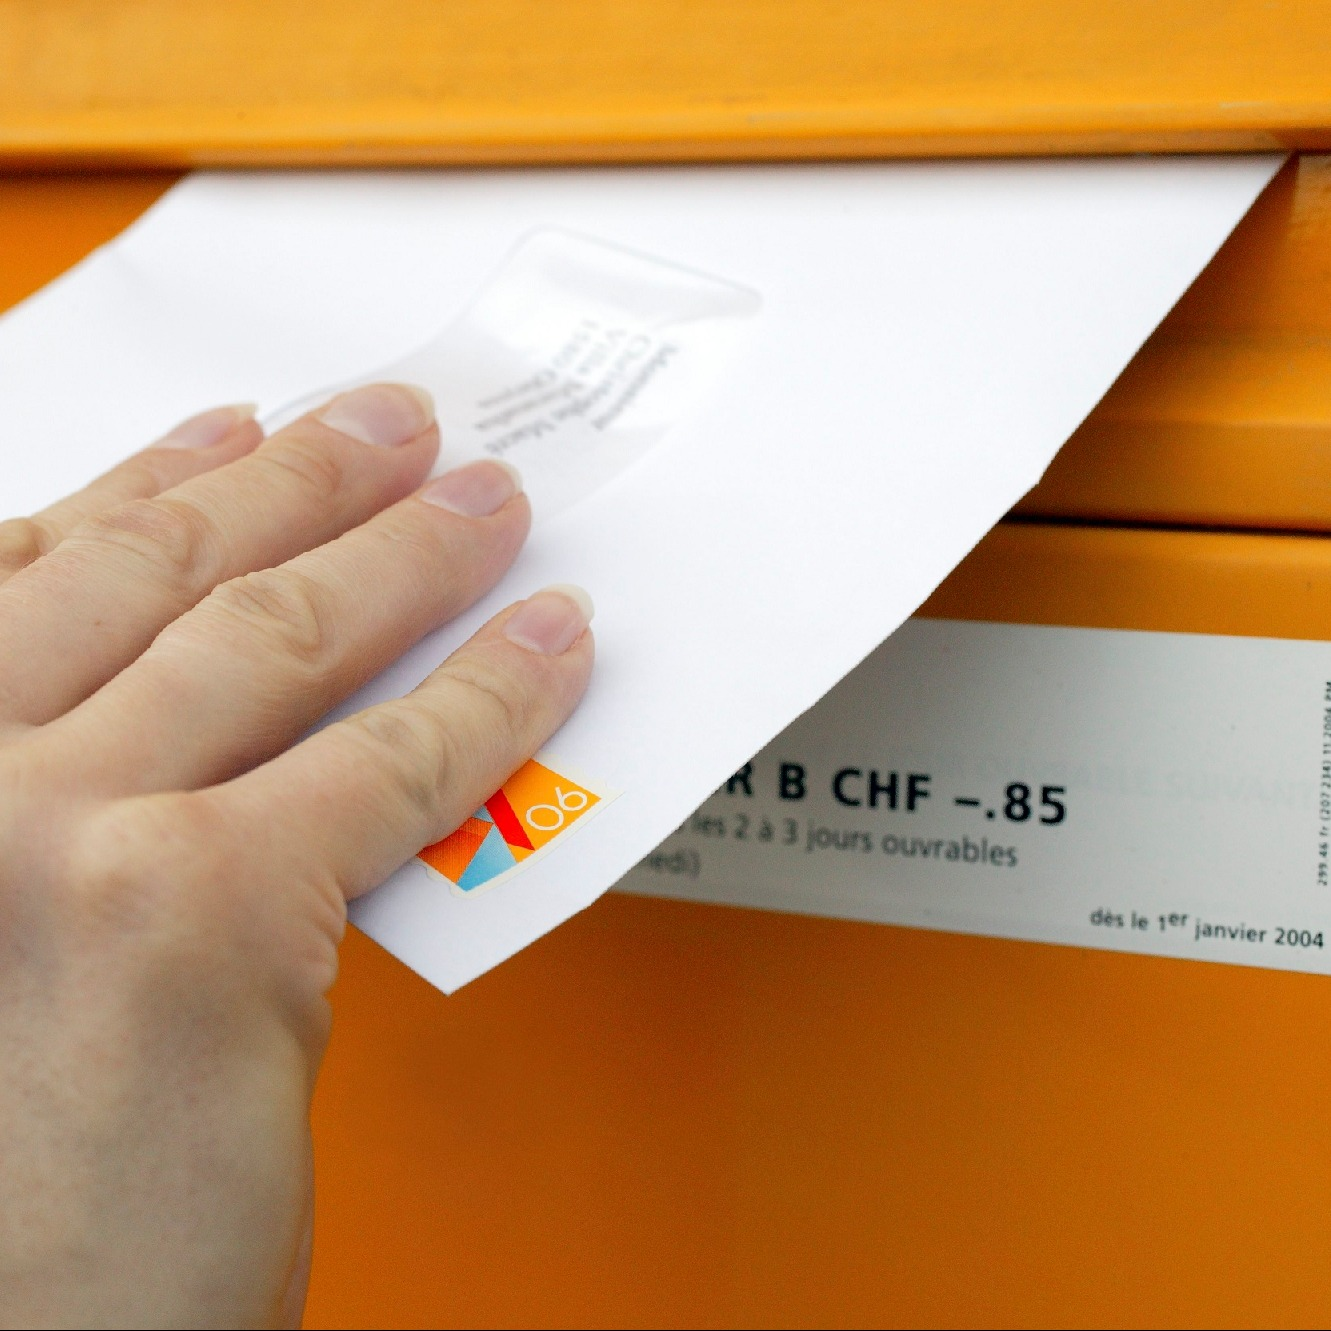 Seeking novel proposals to enable accurate delivery of postal mail to letterboxes